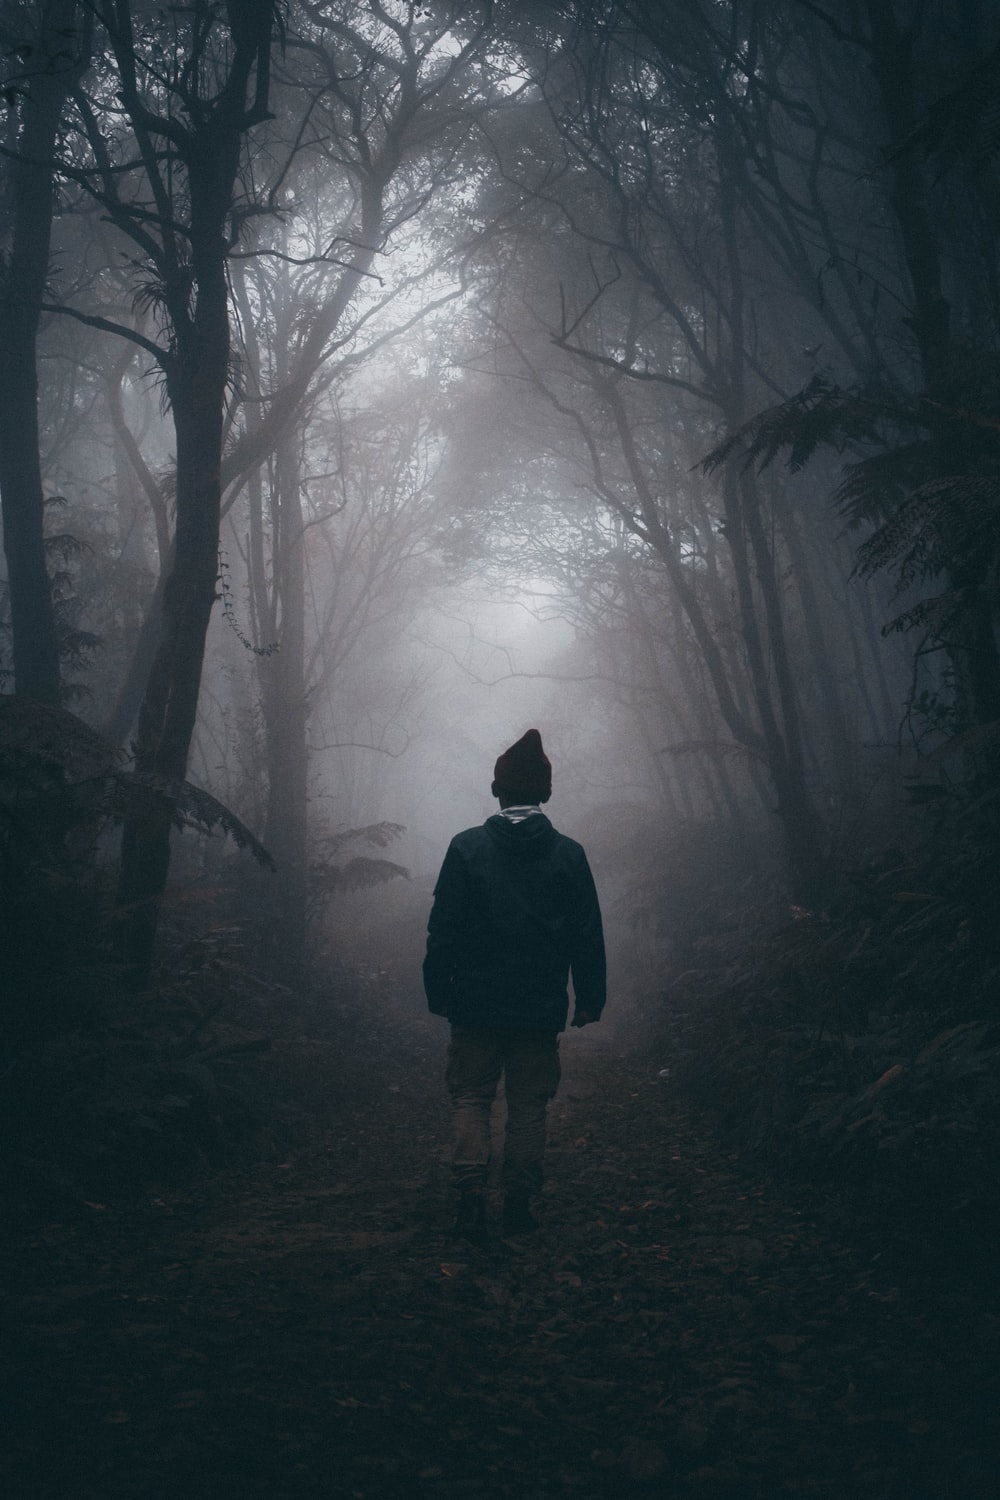 man waling on woods surrounded by mist